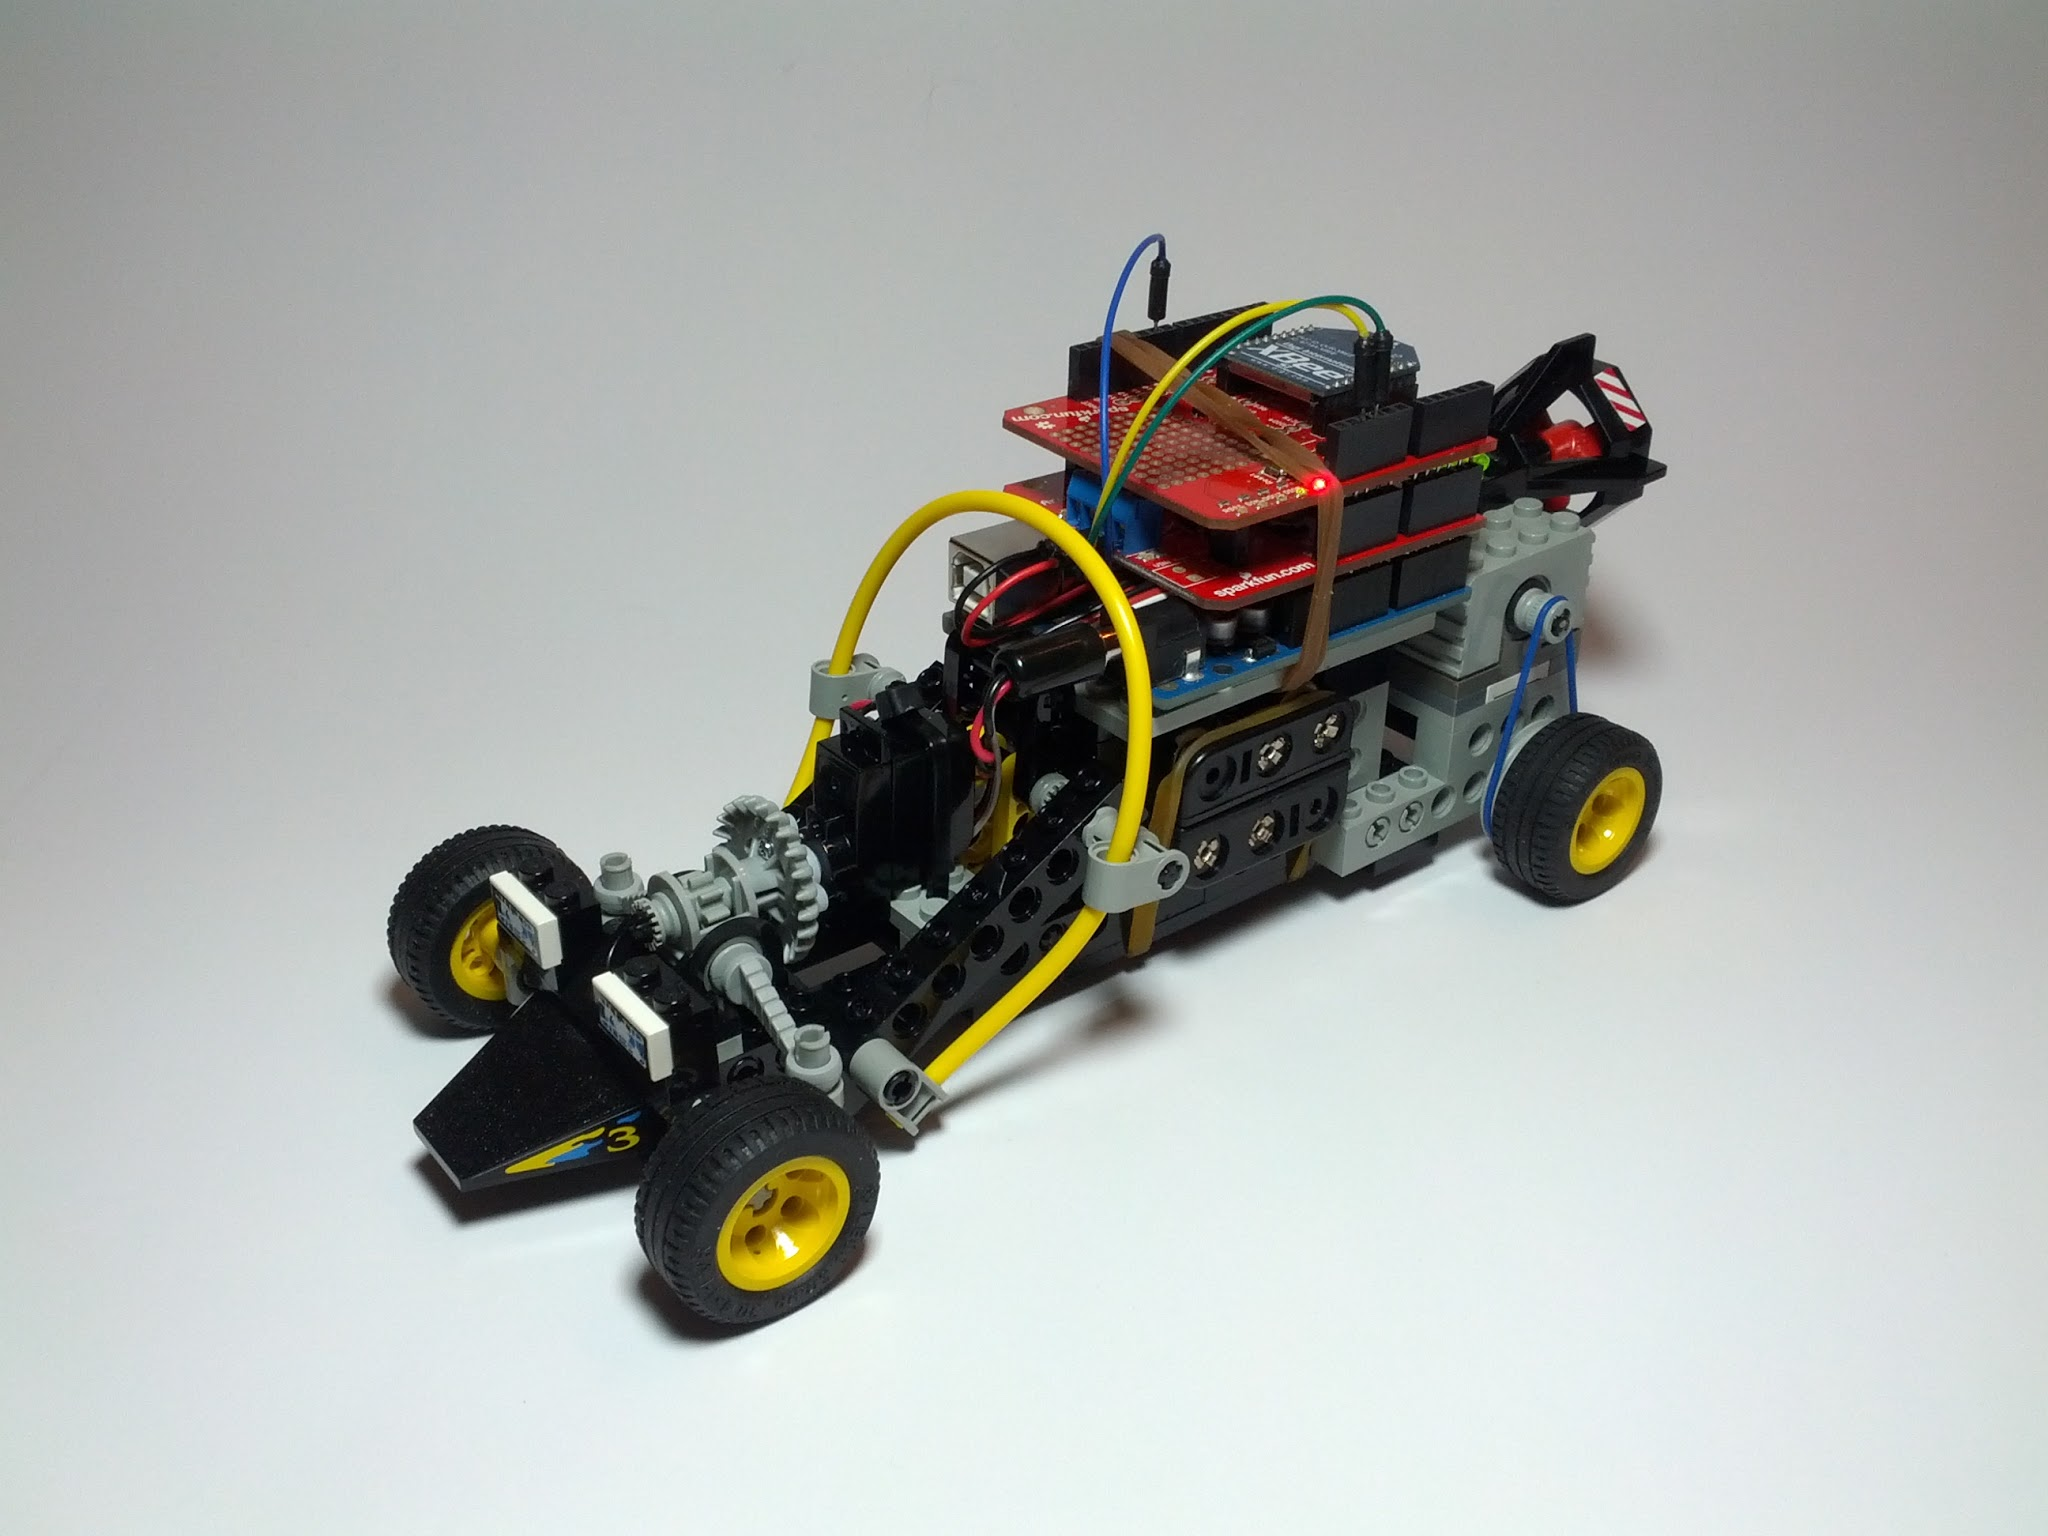 Picture of Lego Technic Car With Arduino + XBee Wireless Control